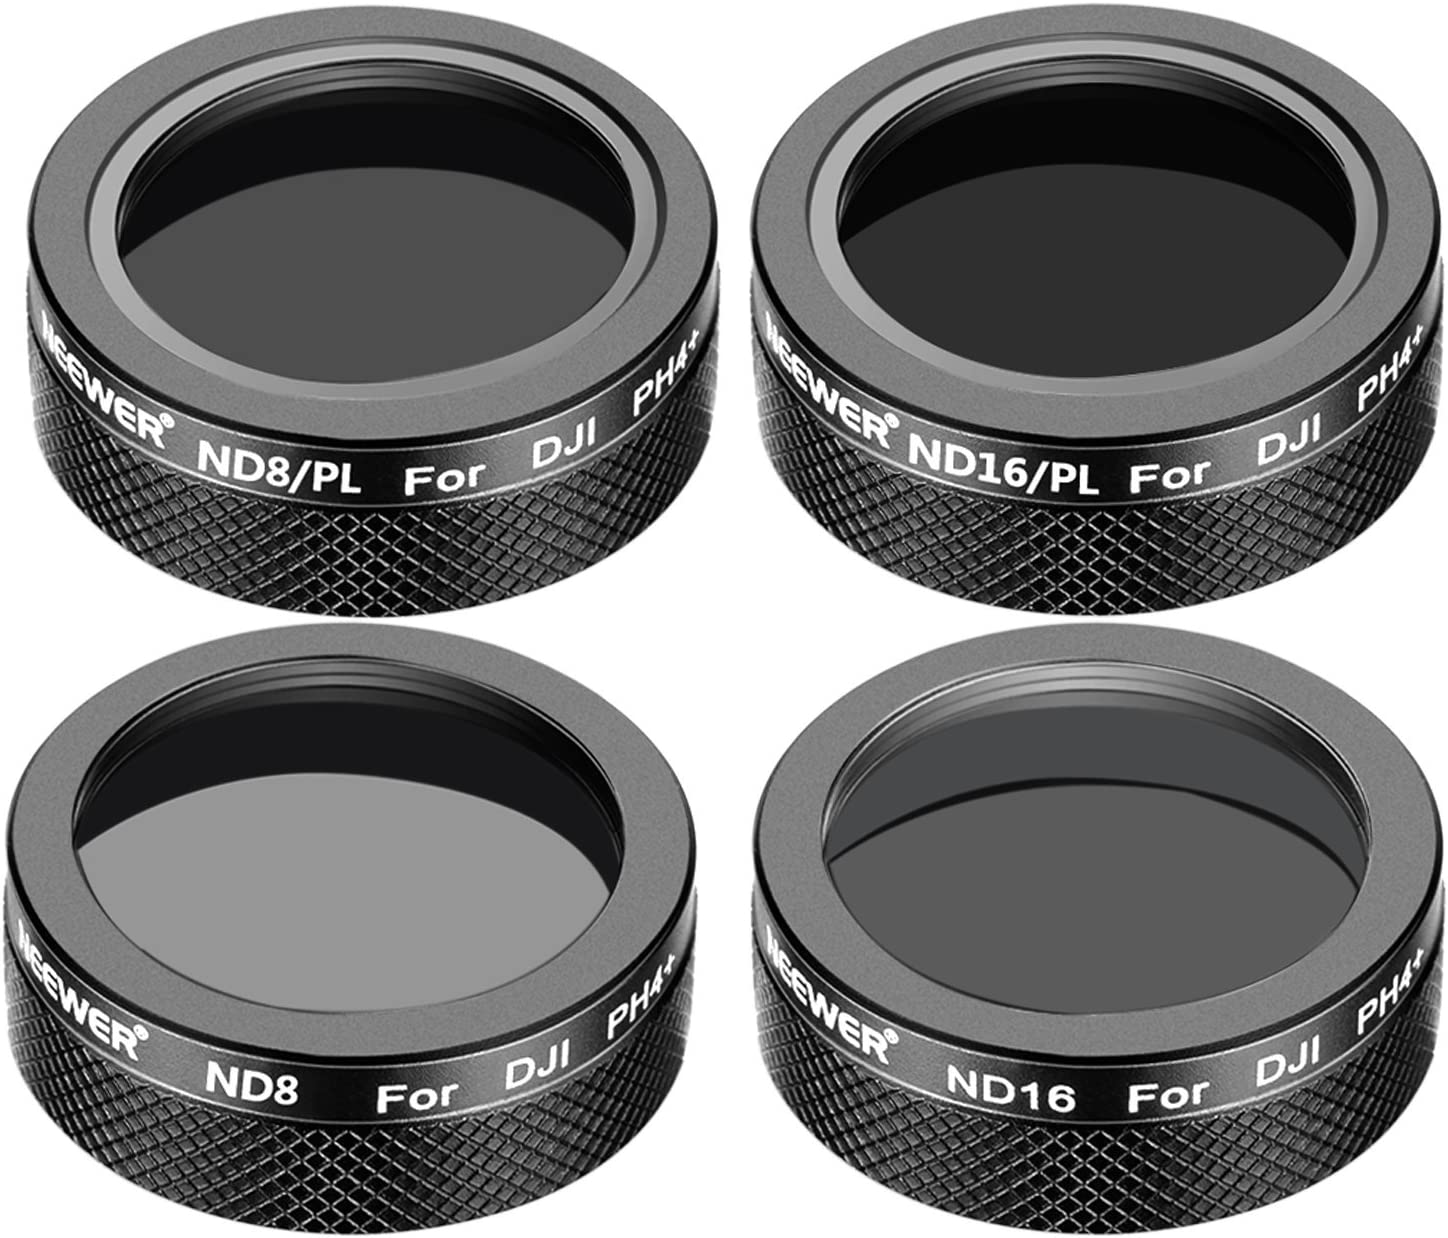 Made of Optical Glass and Aluminum Alloy Frame Neewer 4 Pieces Multi-Coated Filter Kit for DJI Phantom 4 Pro Drone Quadcopter ND16 ND8//PL and ND16//PL Filters Black Includes: ND8